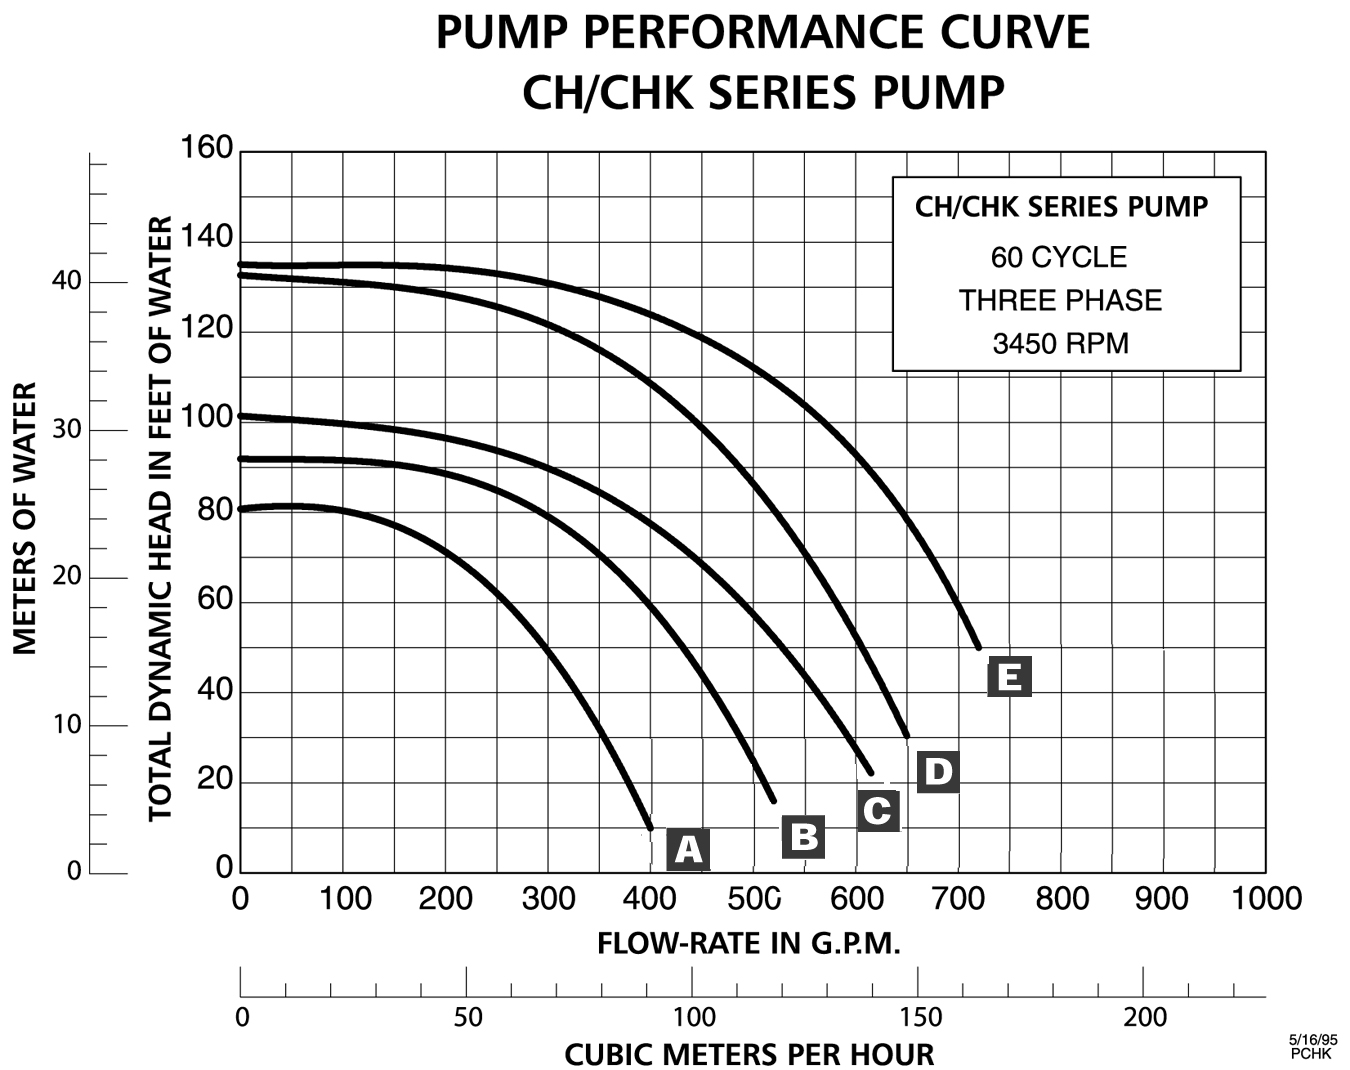 Worthington Lr Pump Performance Curve Pictures to Pin on